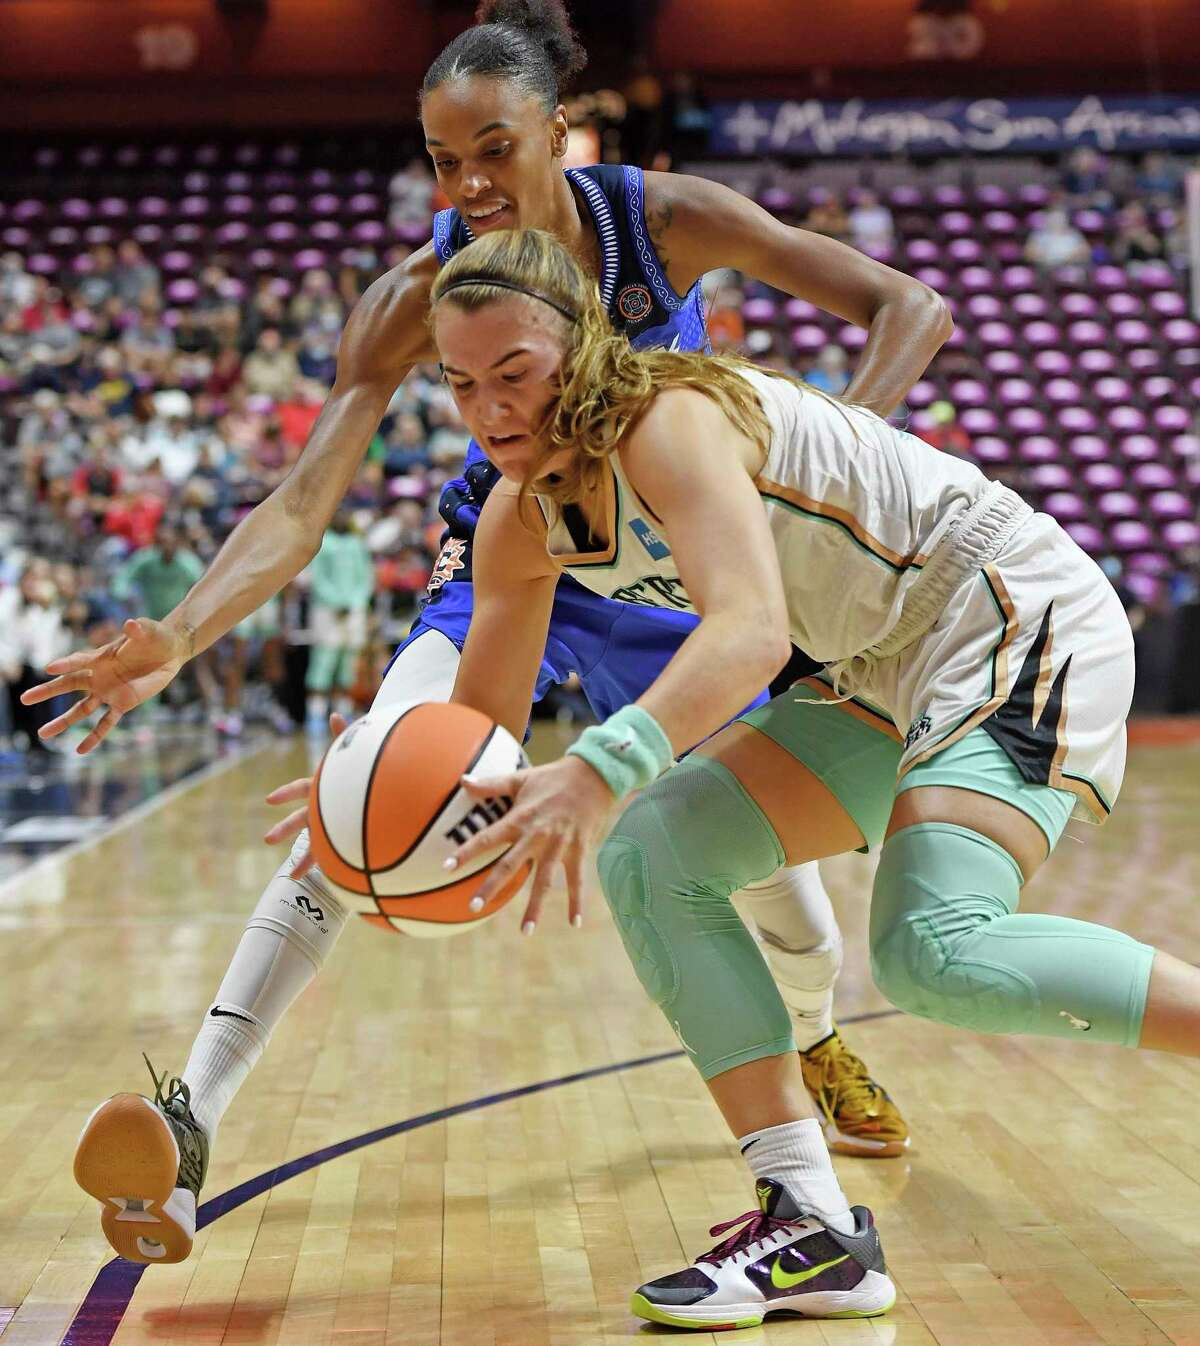 New York Liberty guard Sabrina Ionescu steals the ball from Connecticut Sun forward DwWanna Bonner during the first half of a WNBA basketball game Wednesday, Sept. 15, 2021, in Uncasville, Conn. (Sean D. Elliot/The Day via AP)